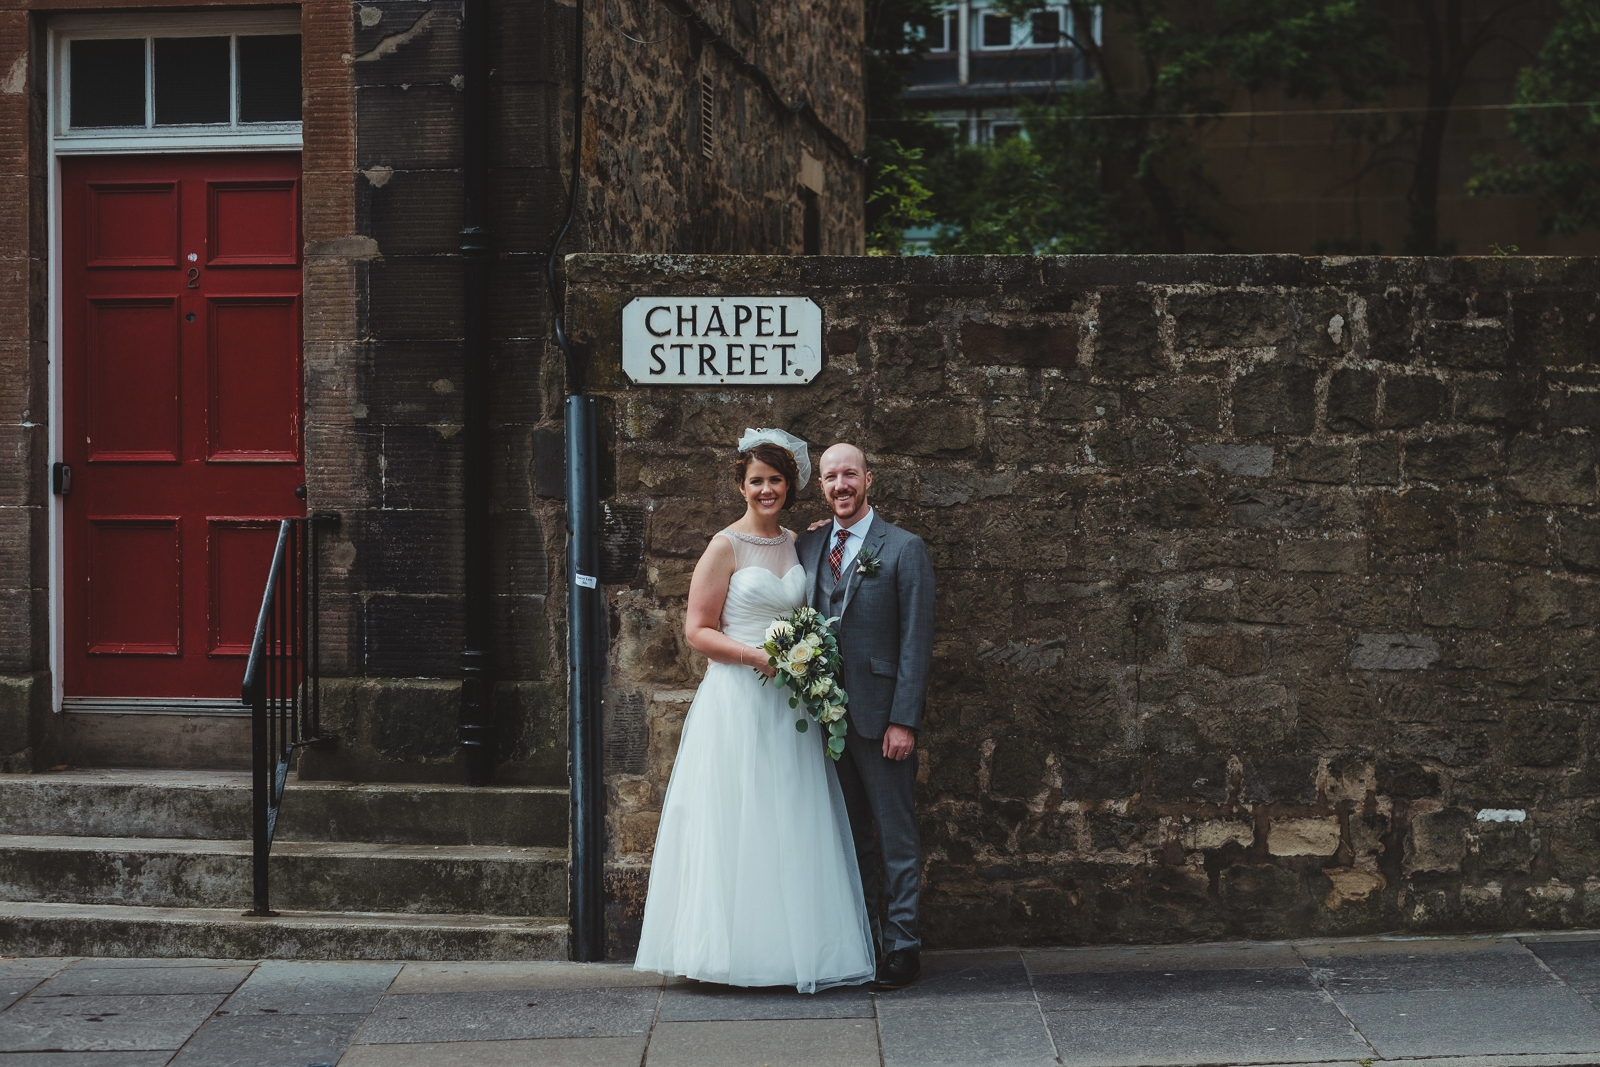 Angela___Andy_s_Edinburgh_elopement_by_Barry_Forshaw_0228.jpg